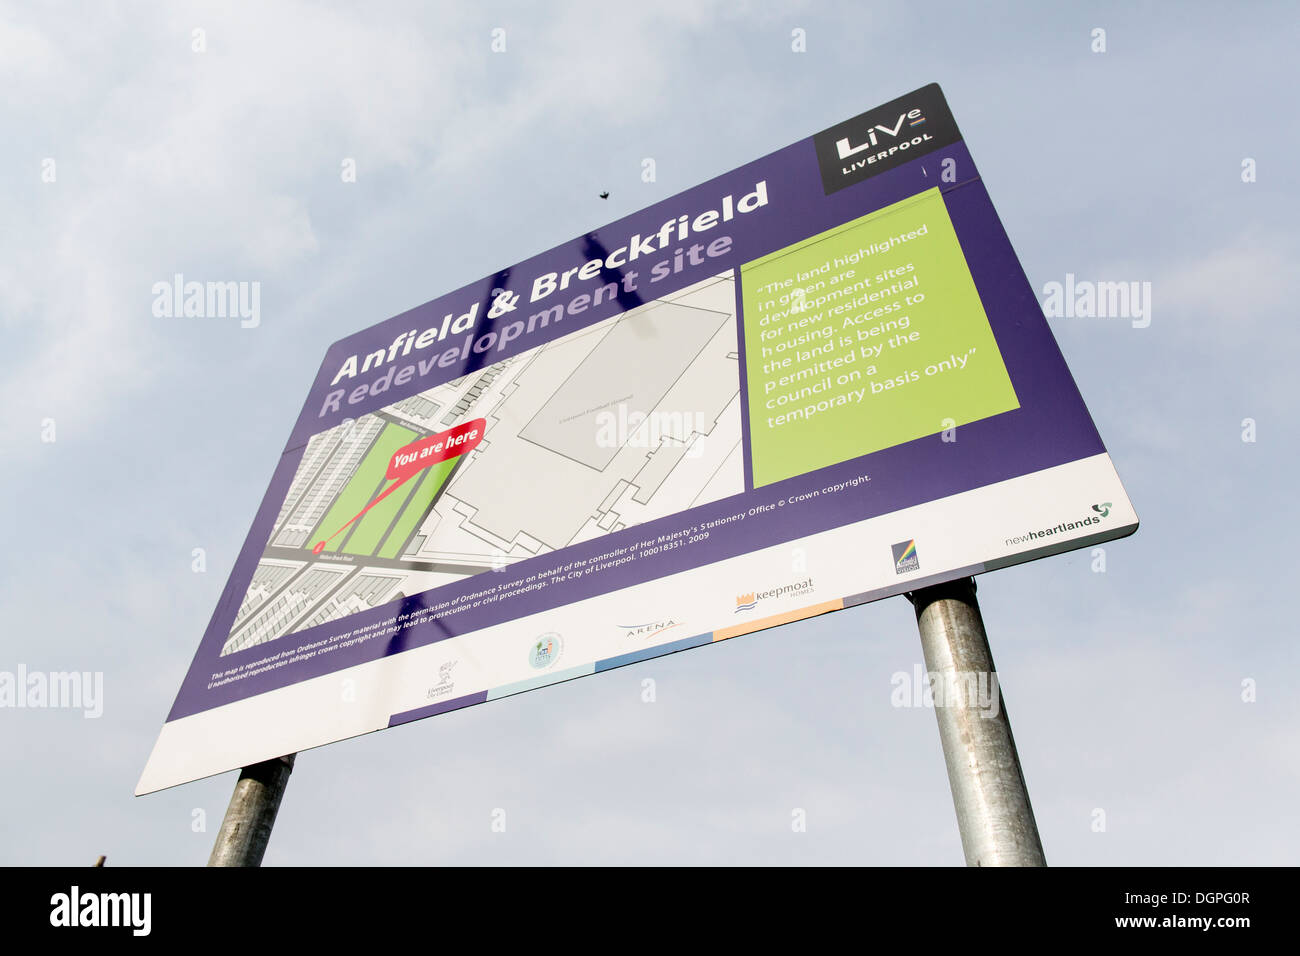 Sign for Anfield & Breckfield redevelopment site,. Anfield, Liverpool, UK - Stock Image